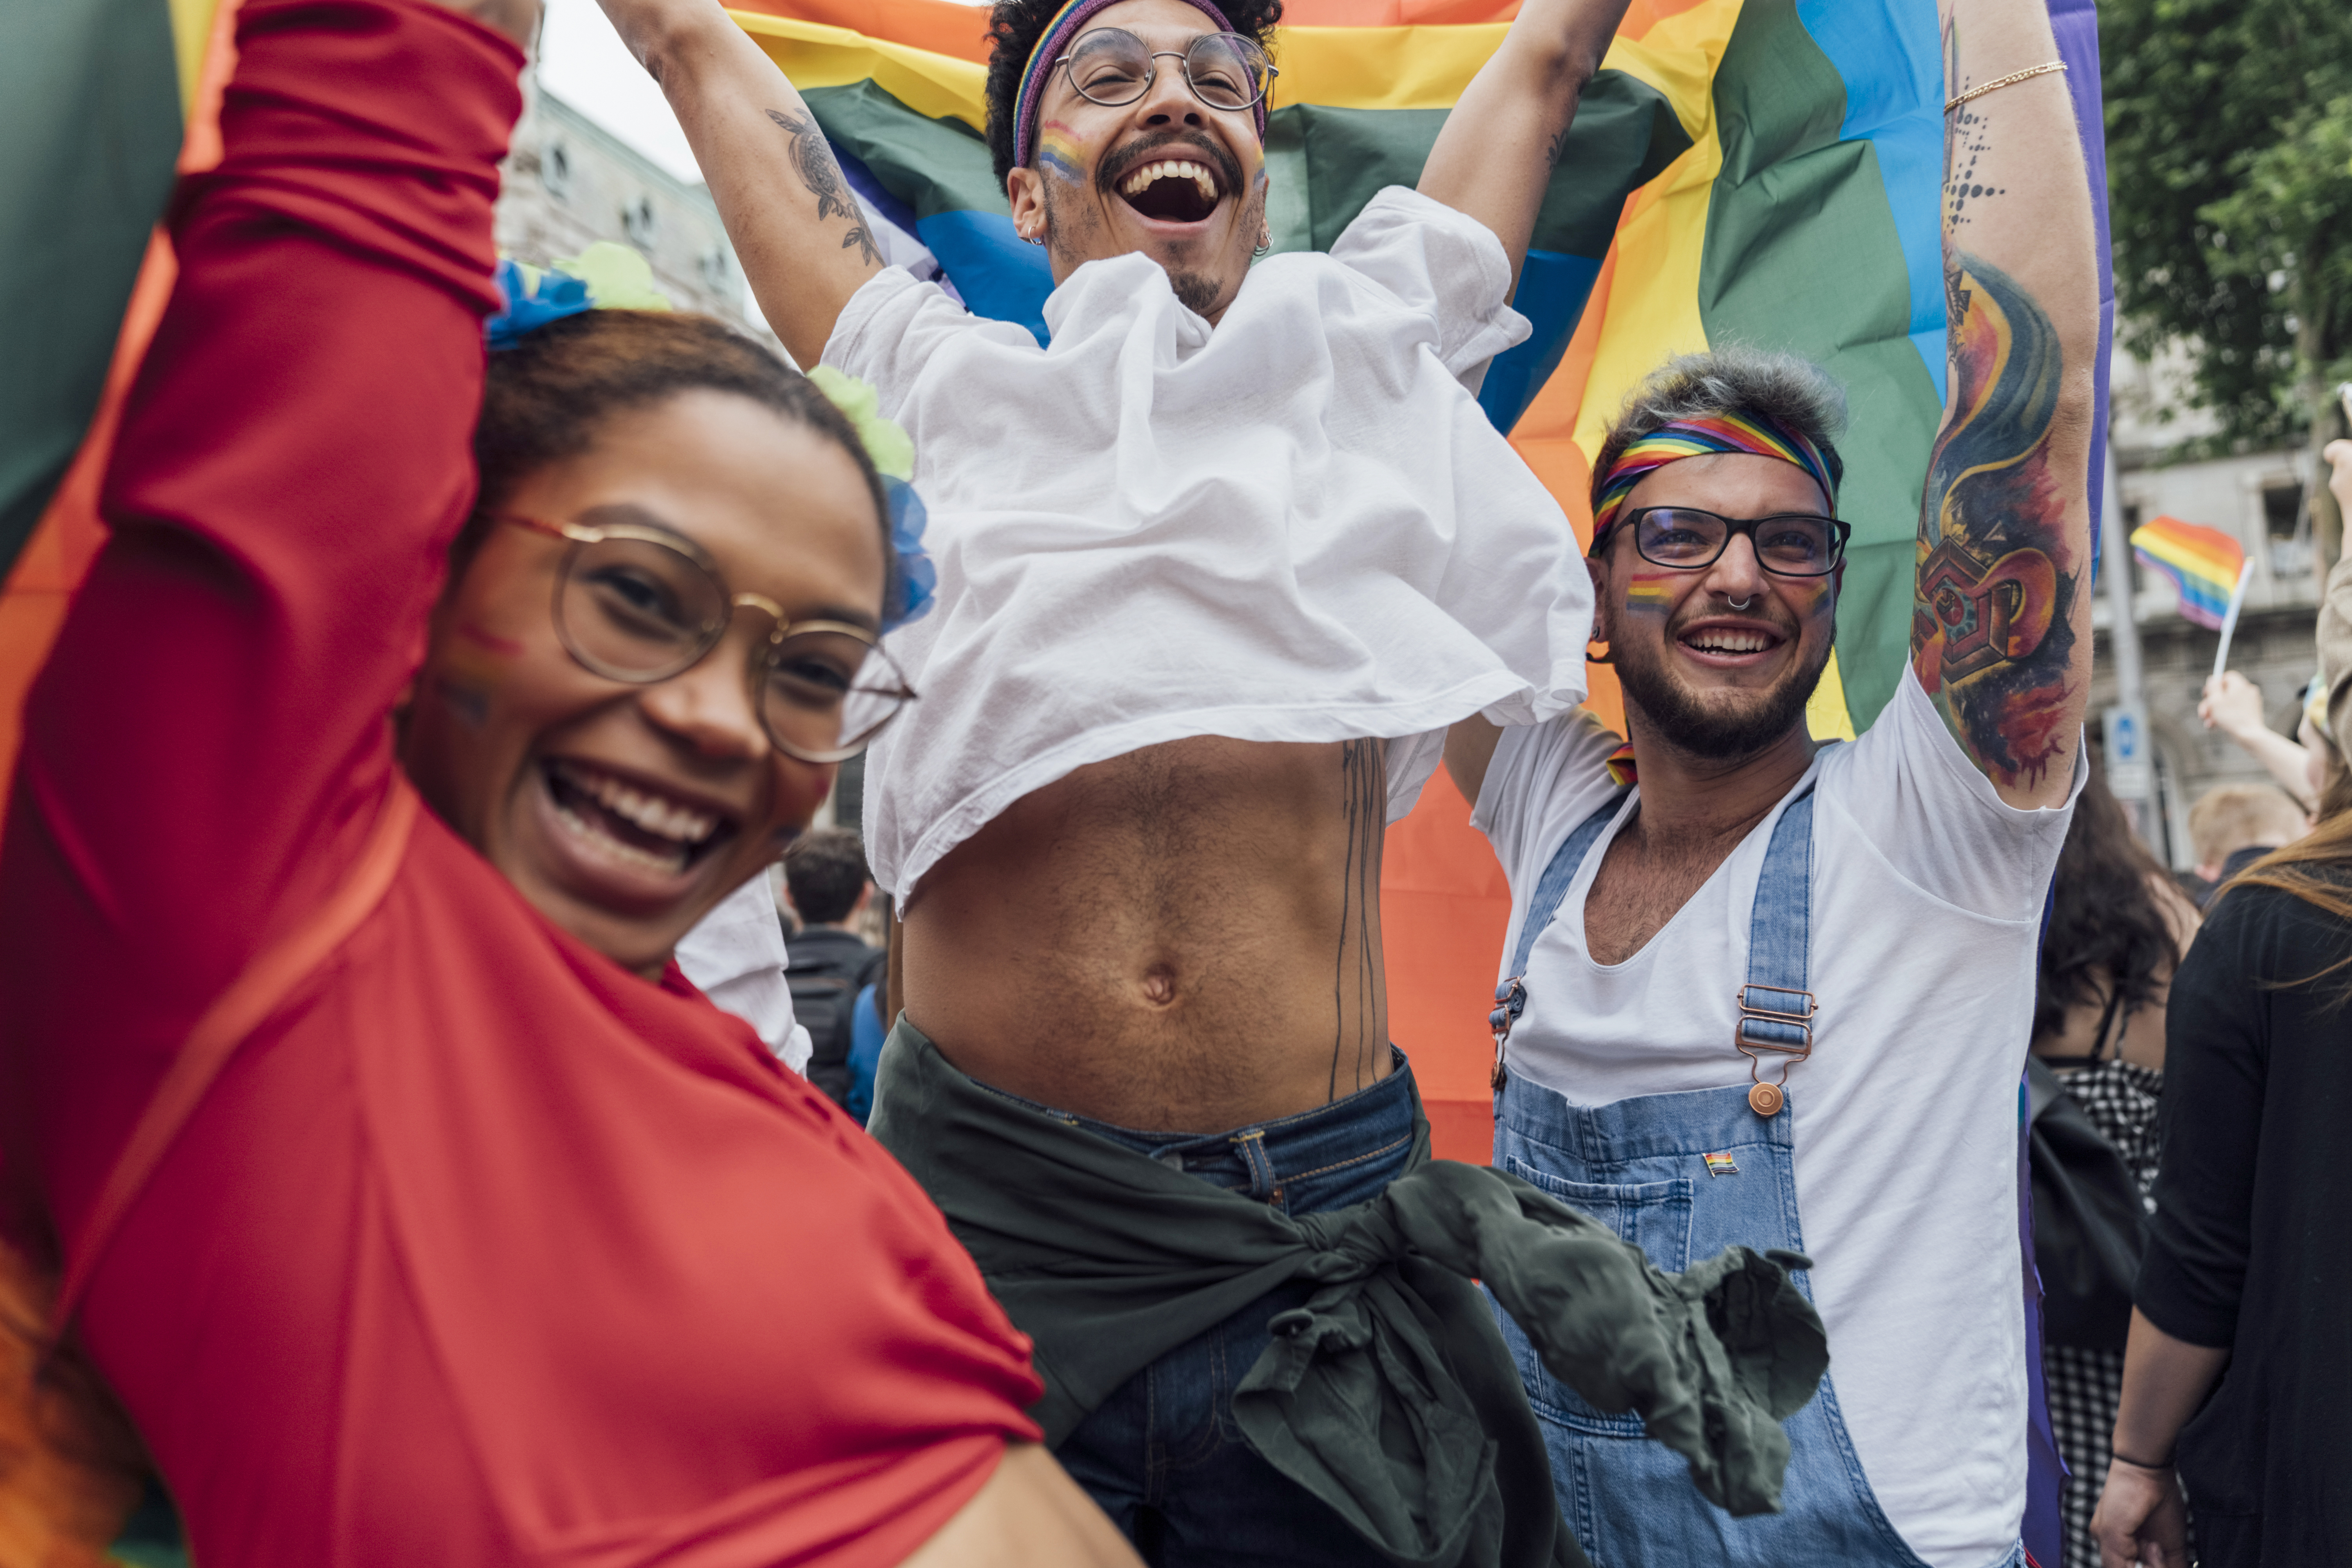 Group of Friends Jumping, Laughing and showing Positive Vibes at the Gay Pride Waving Colourful Rainbow Flags in the Middle of the Busy Street